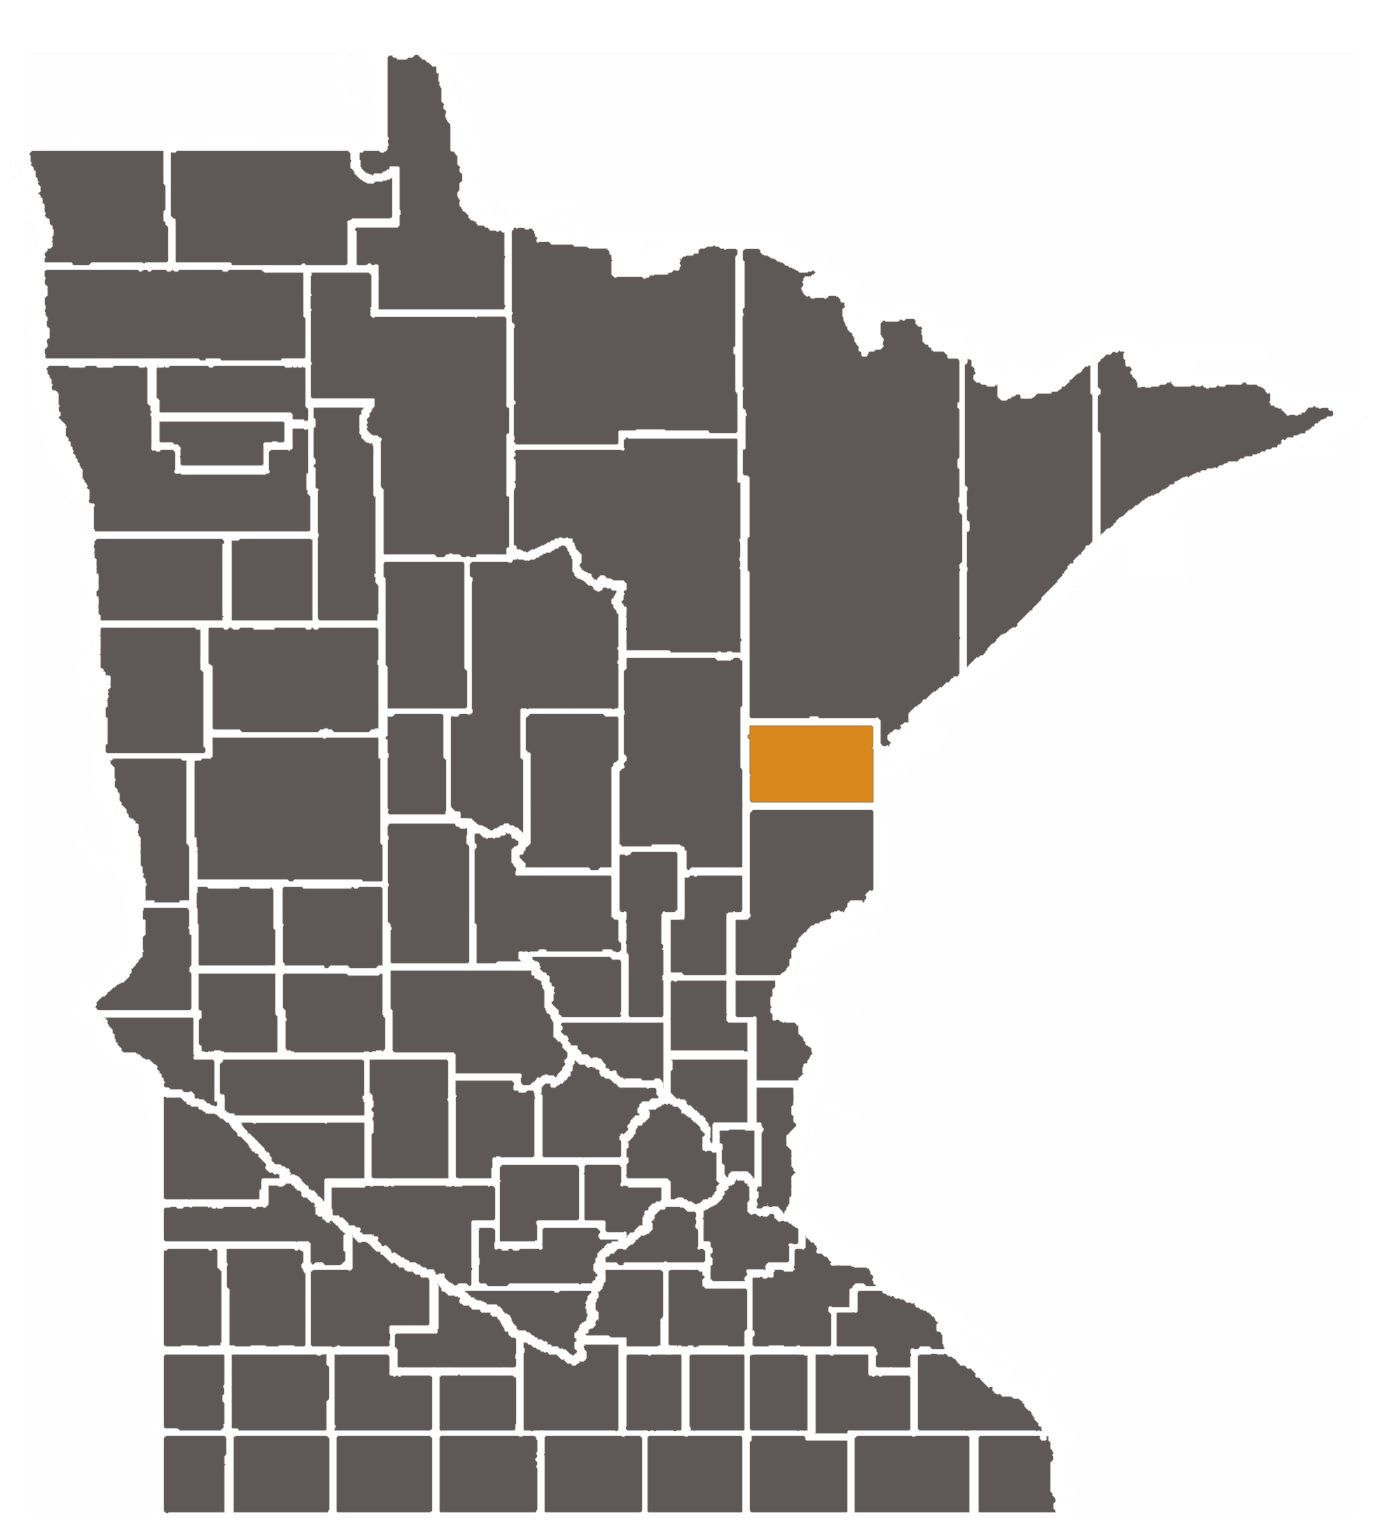 Minnesota map with Carlton County highlighted